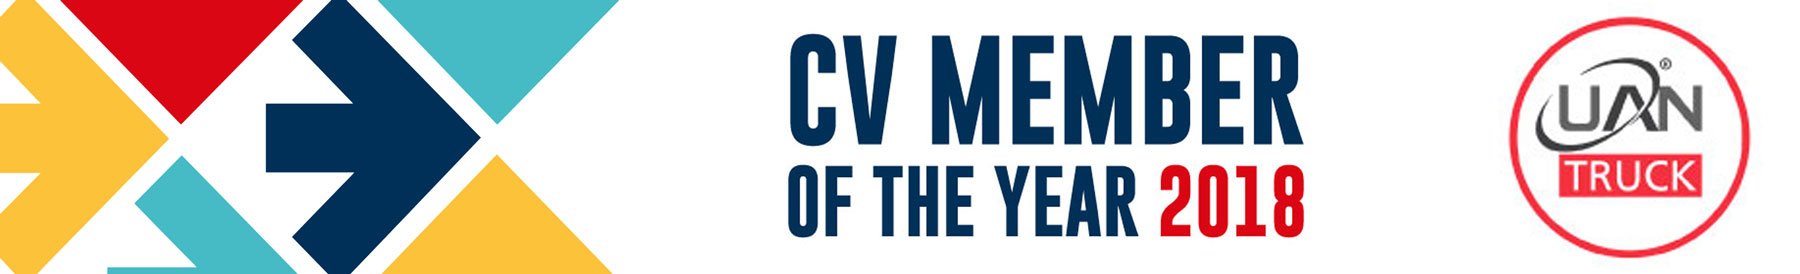 CV Member of the Year 2018